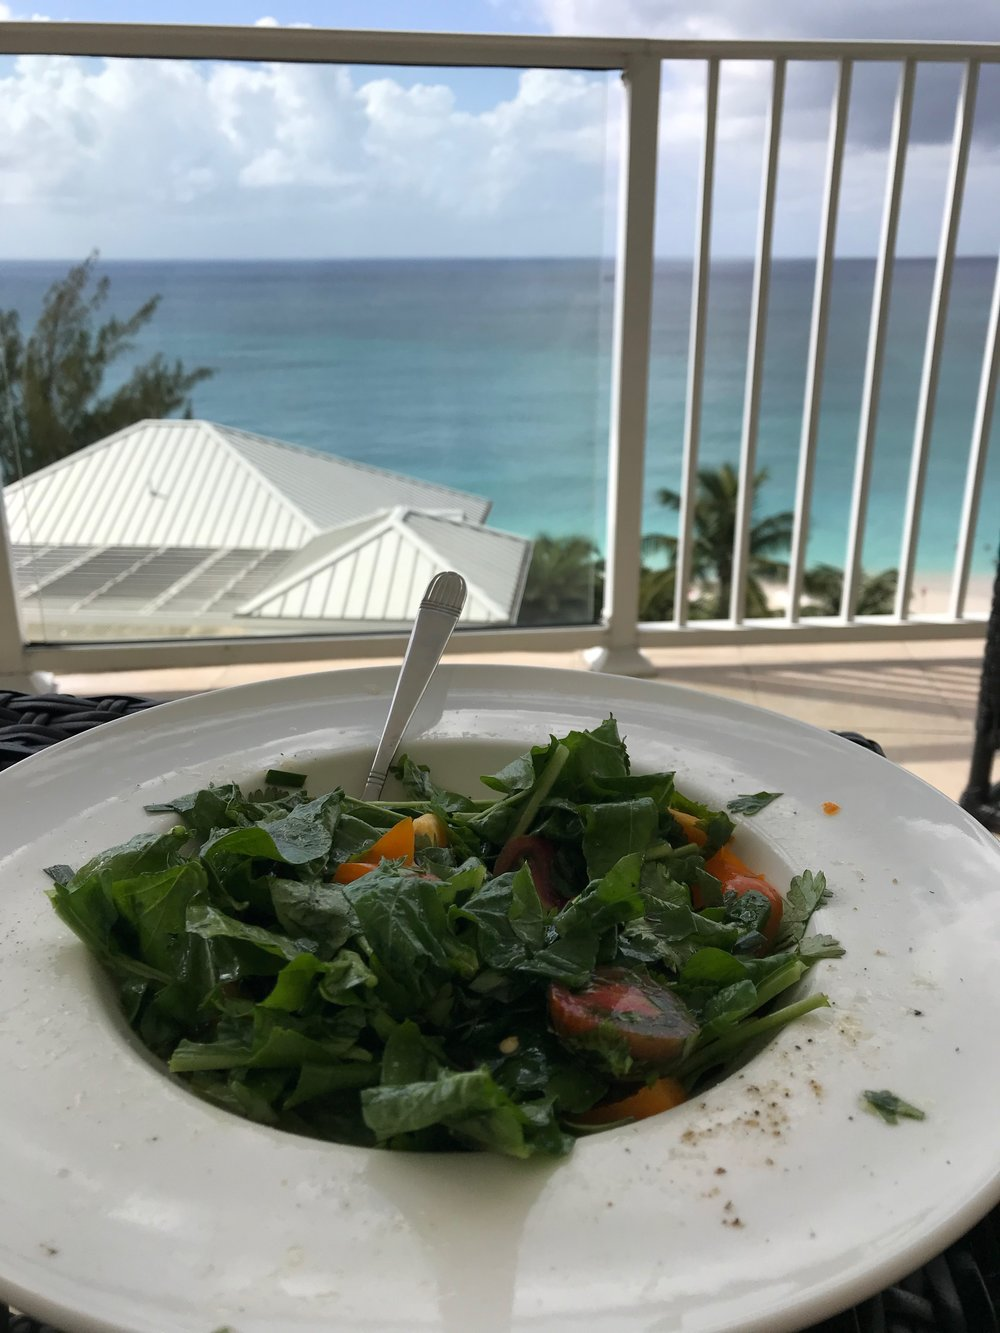 homemade fresh lunch with a view